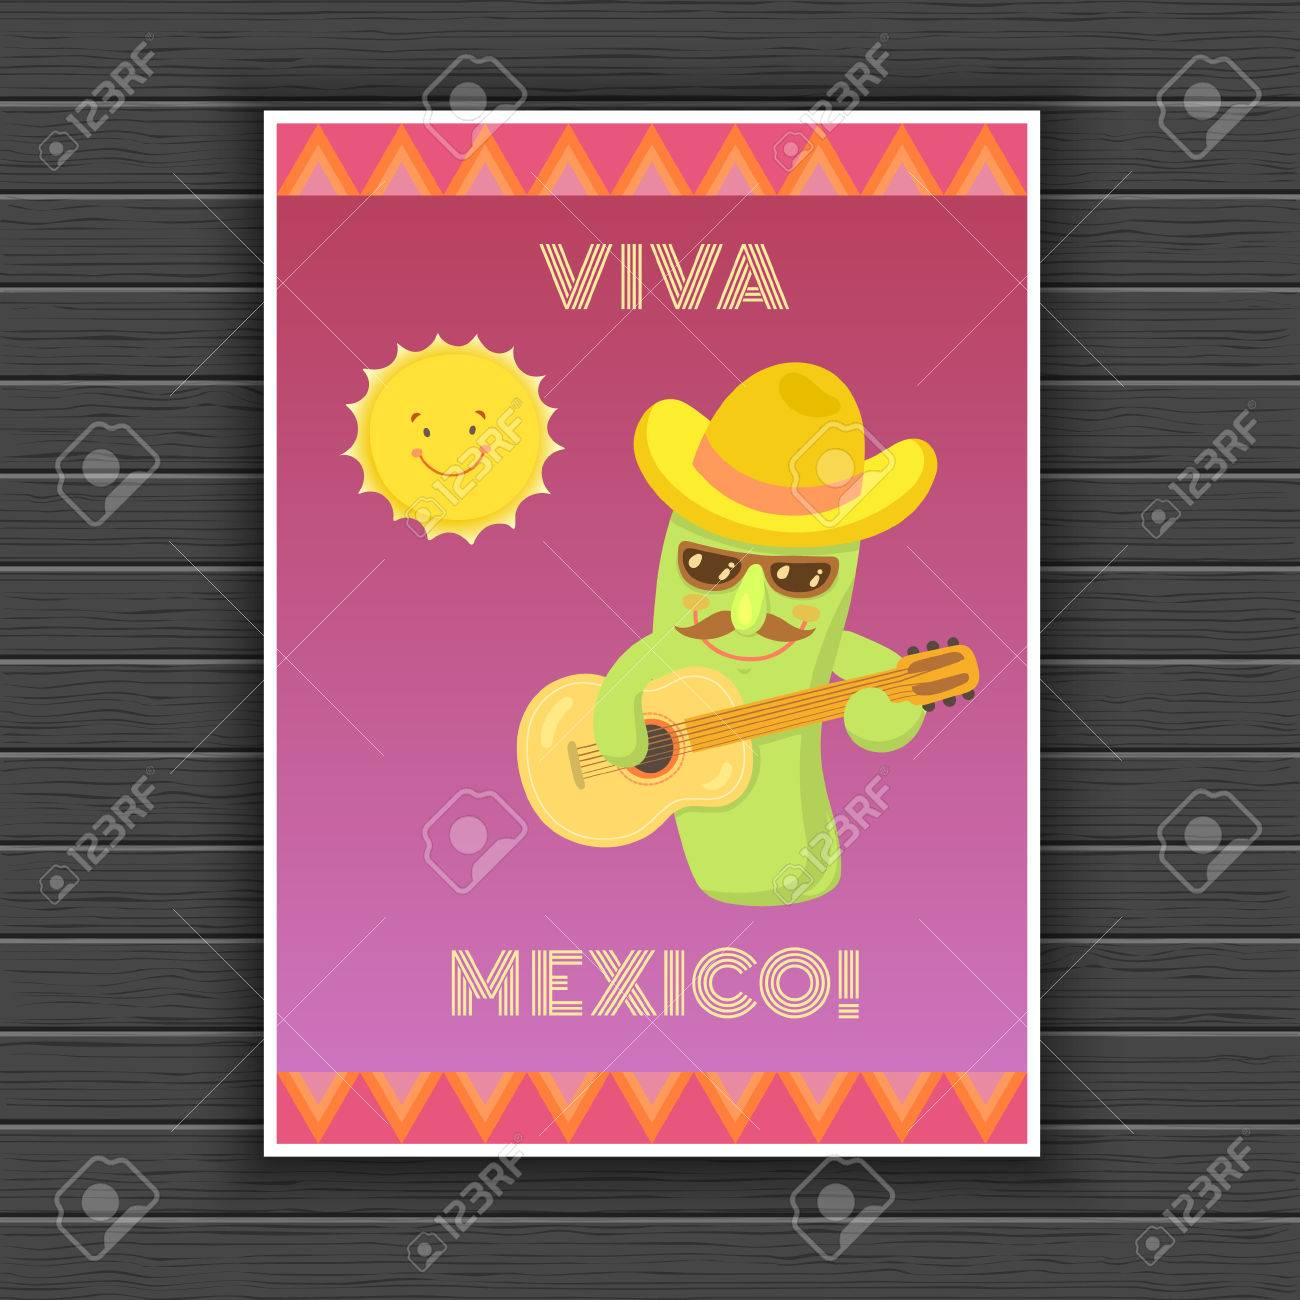 Mexican Cactus Cartoon Characters With Mustache 1d4026ffa81